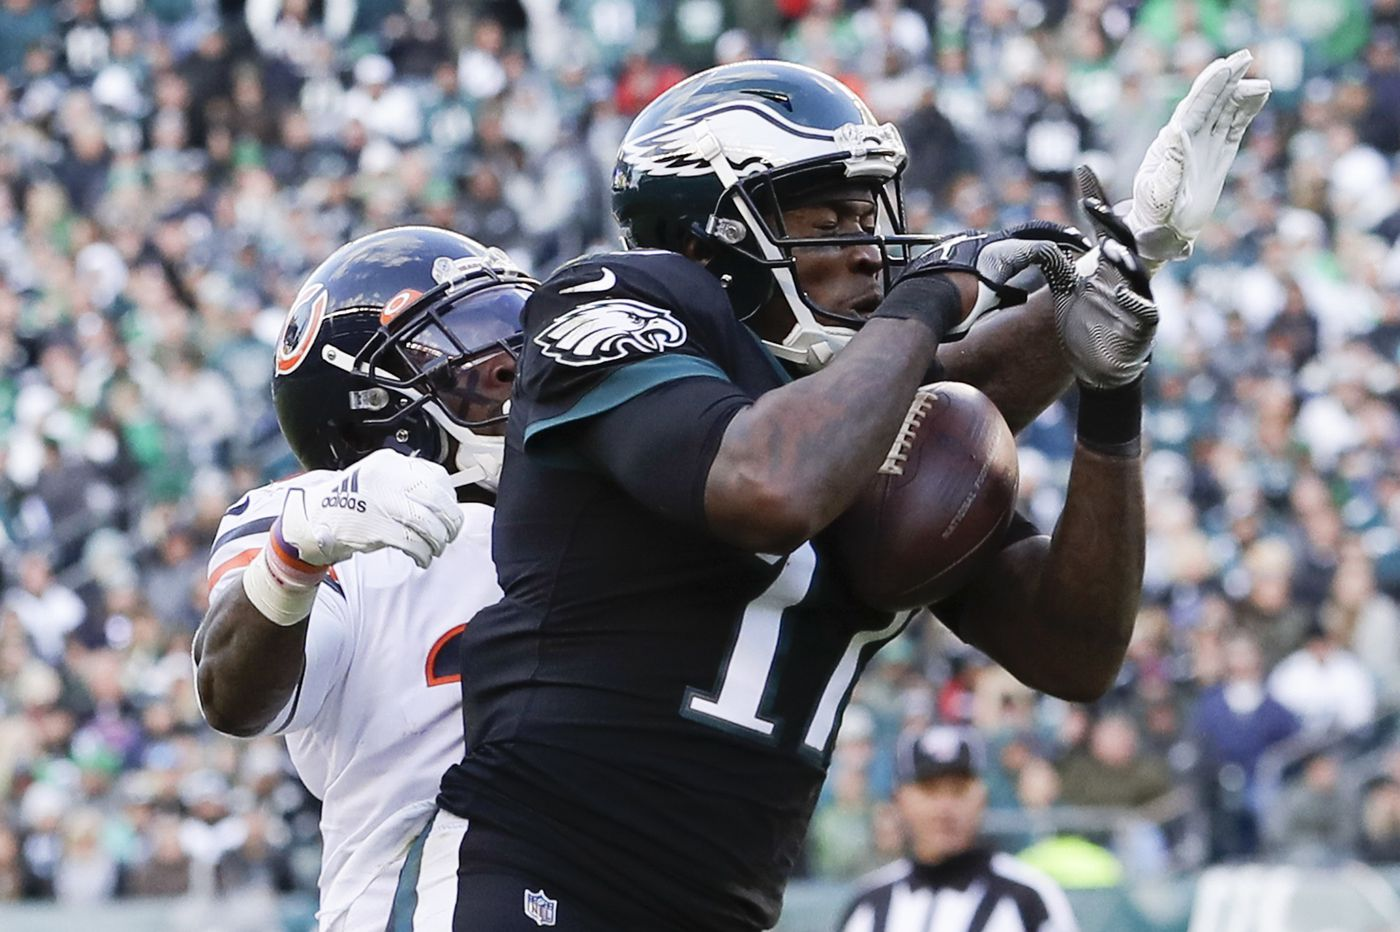 Eagles' Alshon Jeffery listed as out for Patriots game with injured ankle